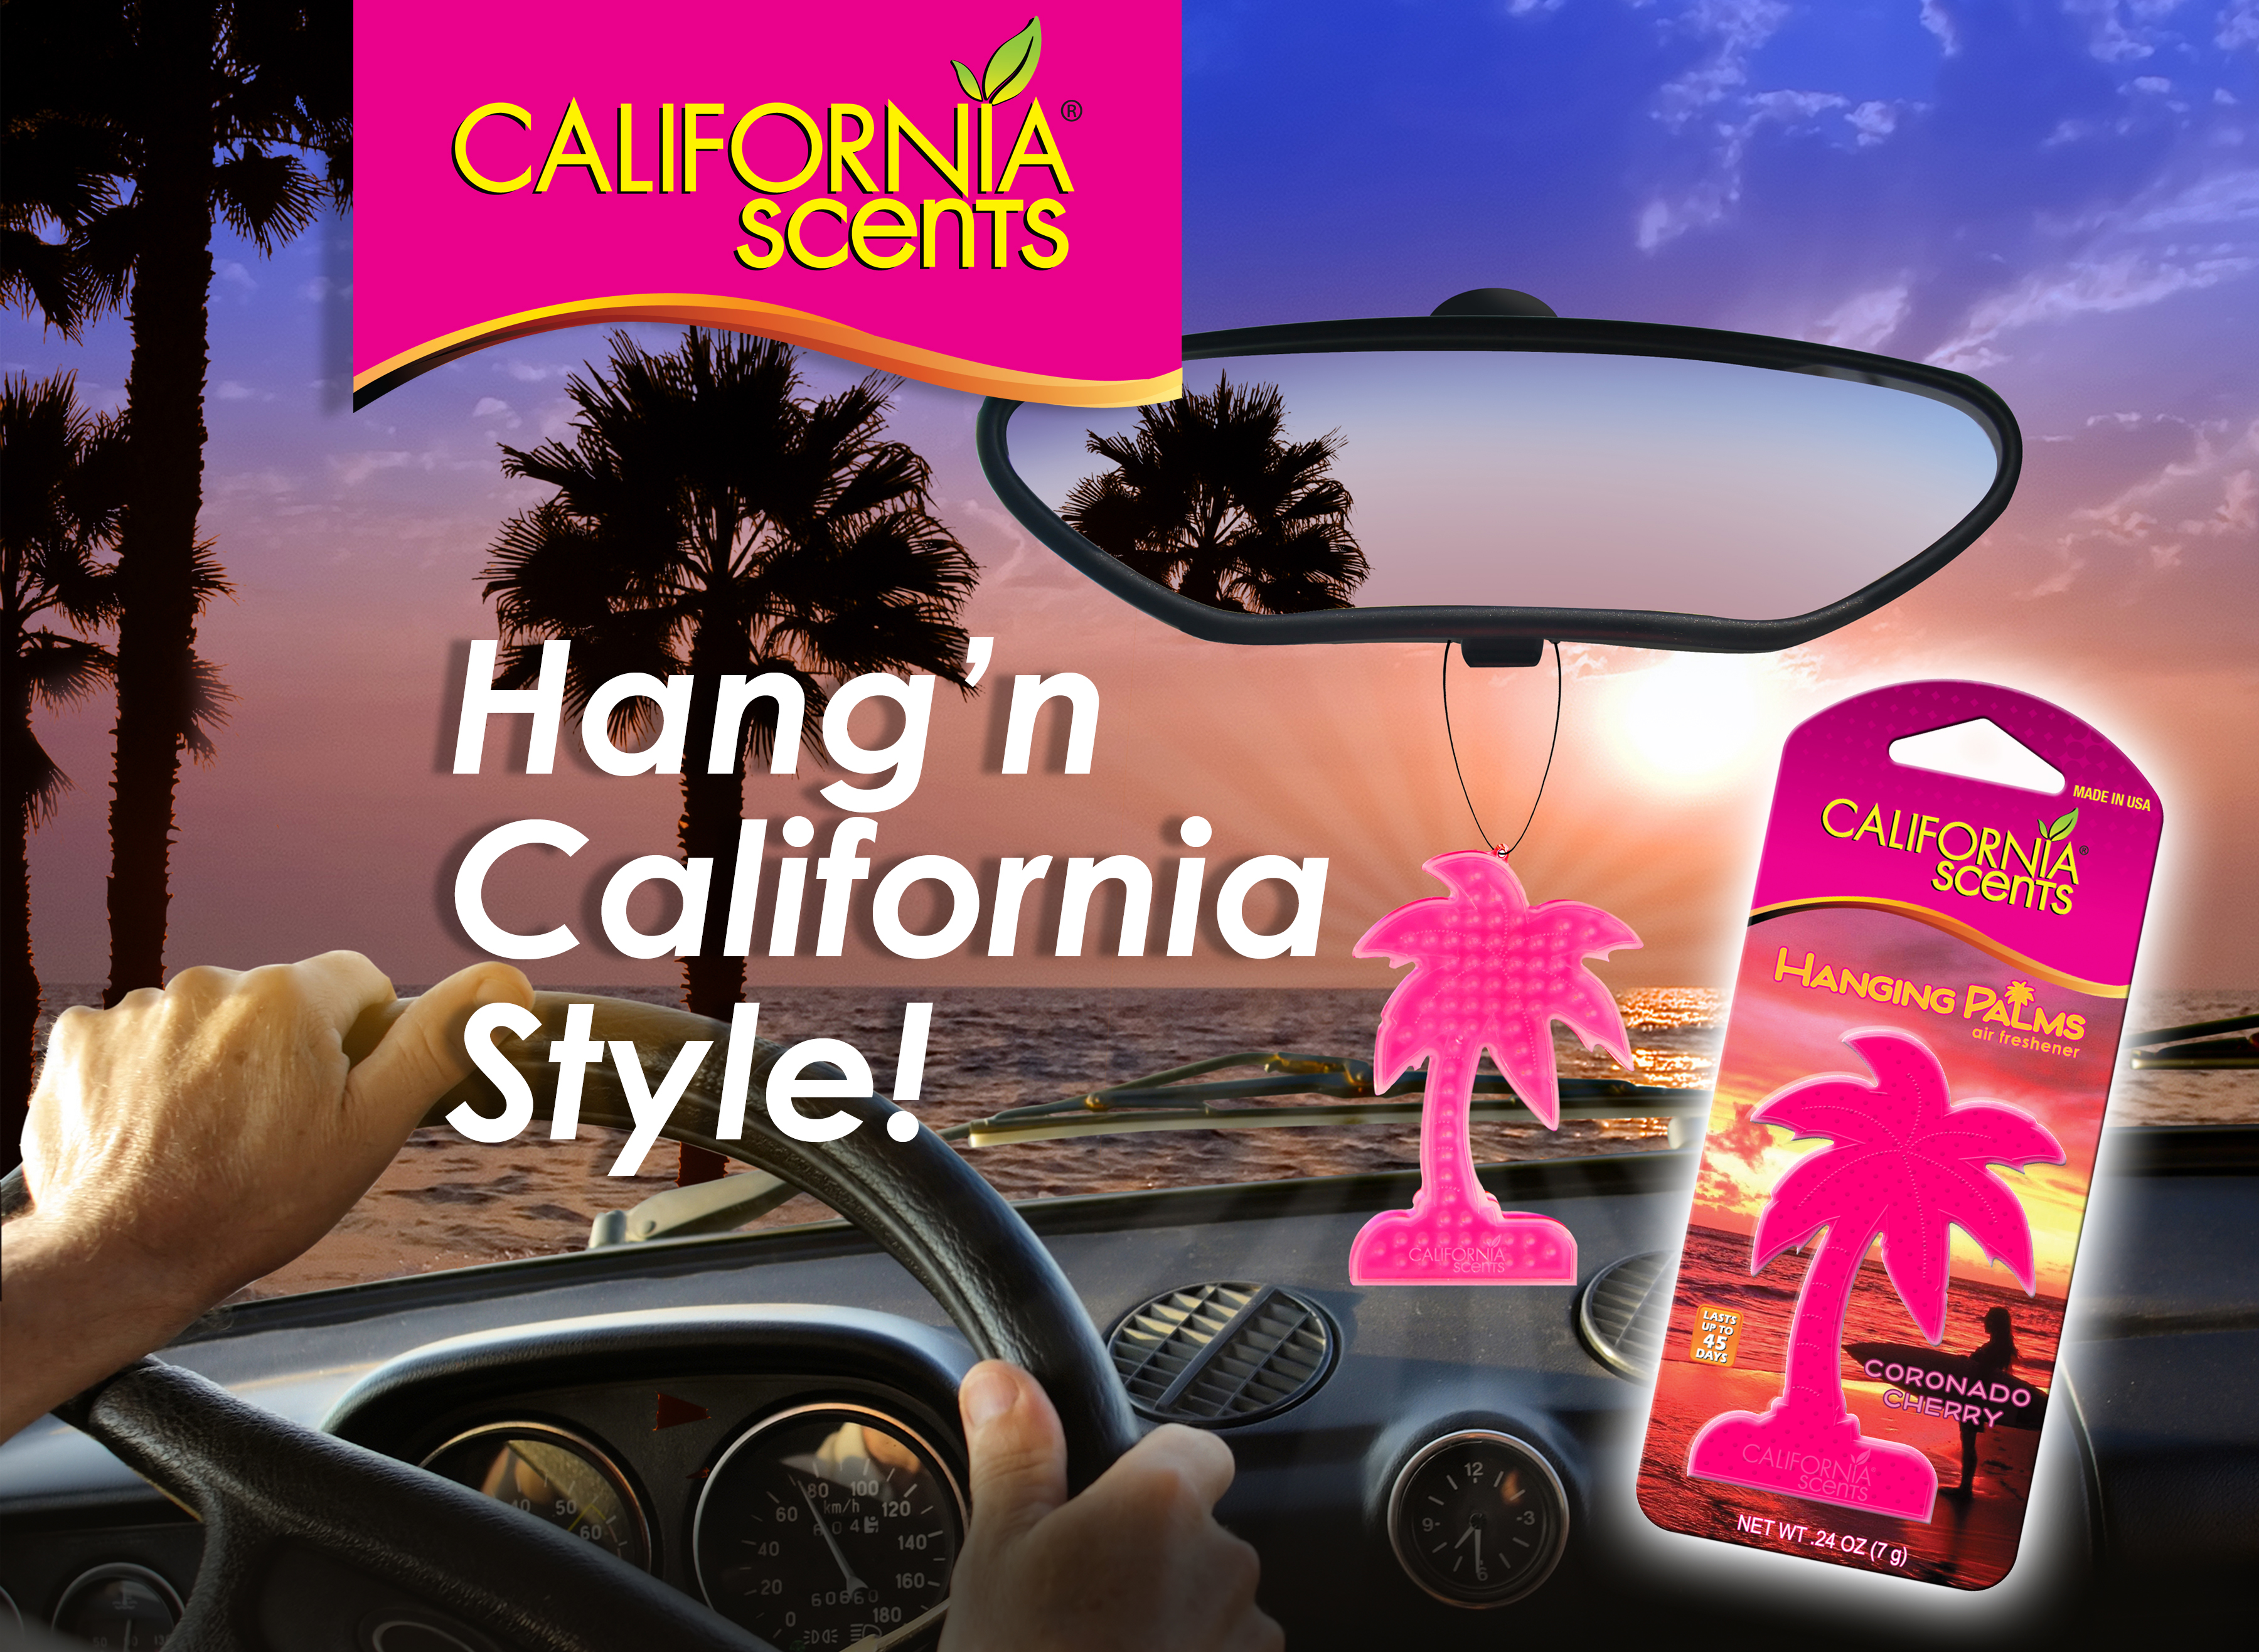 California Scents Air Freshener Product and Packaging